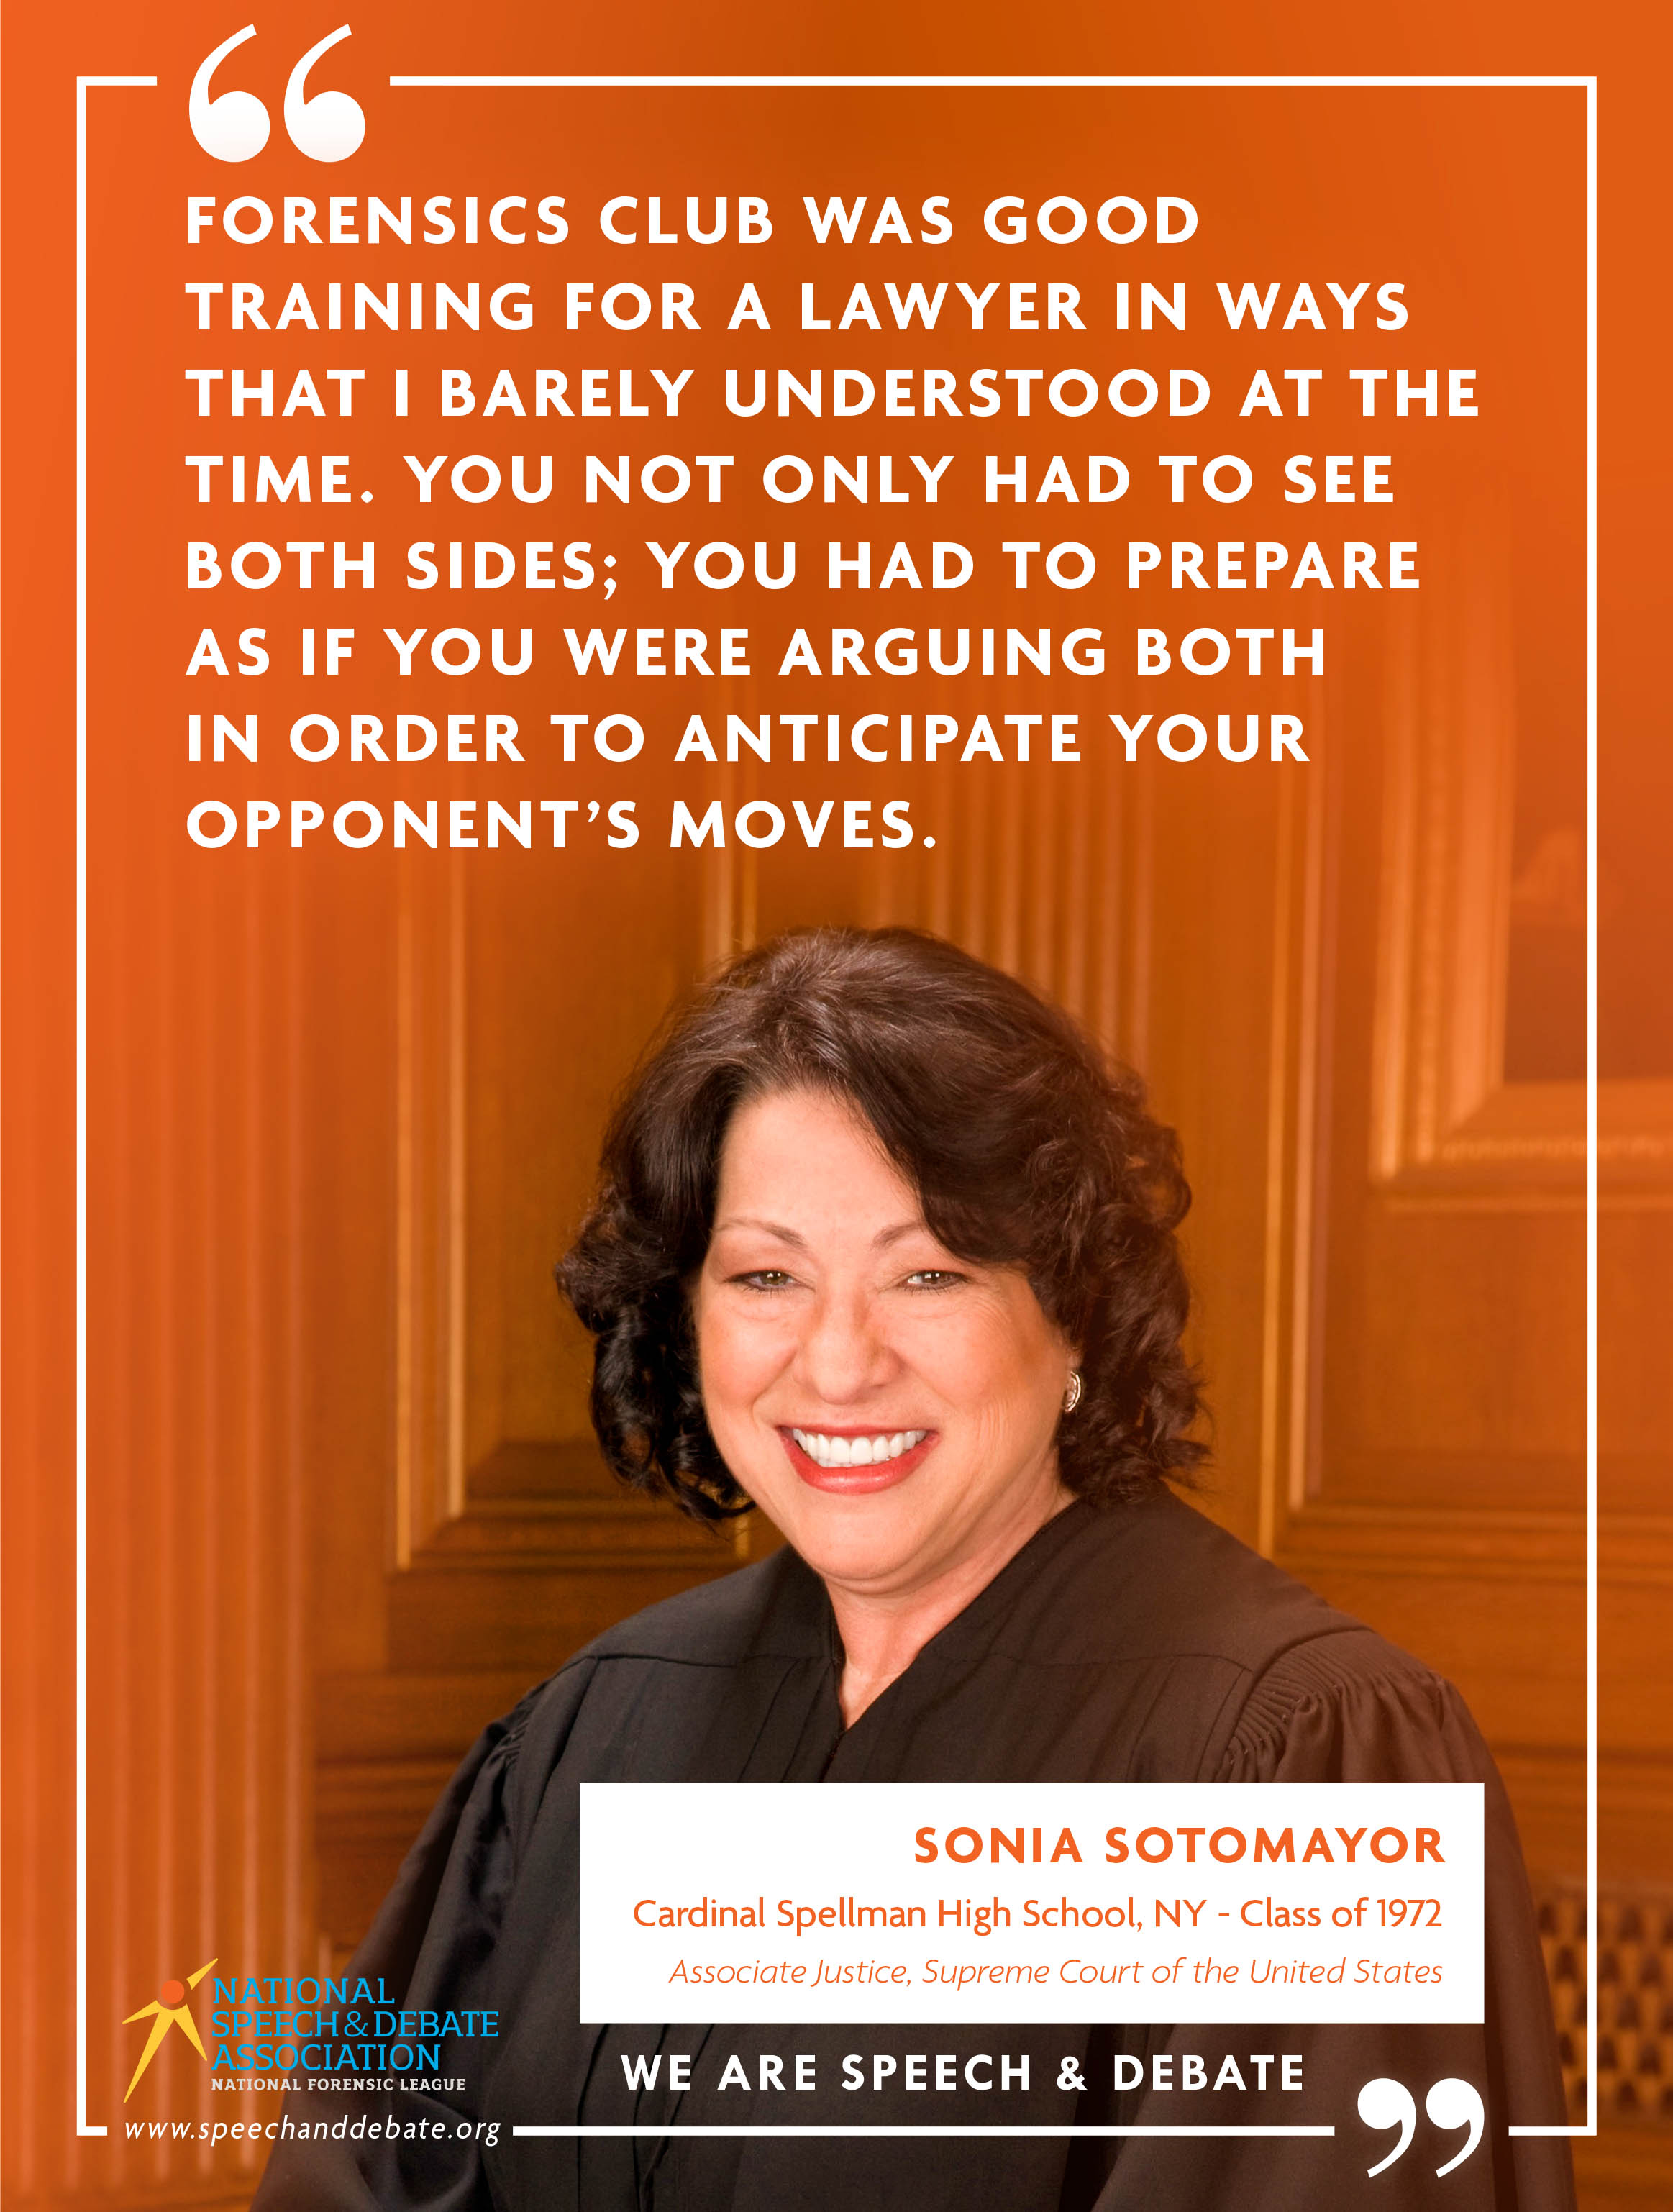 """FORENSICS CLUB WAS GOOD TRAINING FOR A LAWYER IN WAYS THAT I BARELY UNDERSTOOD AT THE TIME. YOU NOT ONLY HAD TO SEE BOTH SIDES; YOU HAD TO PREPARE AS IF YOU WERE ARGUING BOTH IN ORDER TO ANTICIPATE YOUR OPPONENT'S MOVES."" - Sonia Sotomayor"